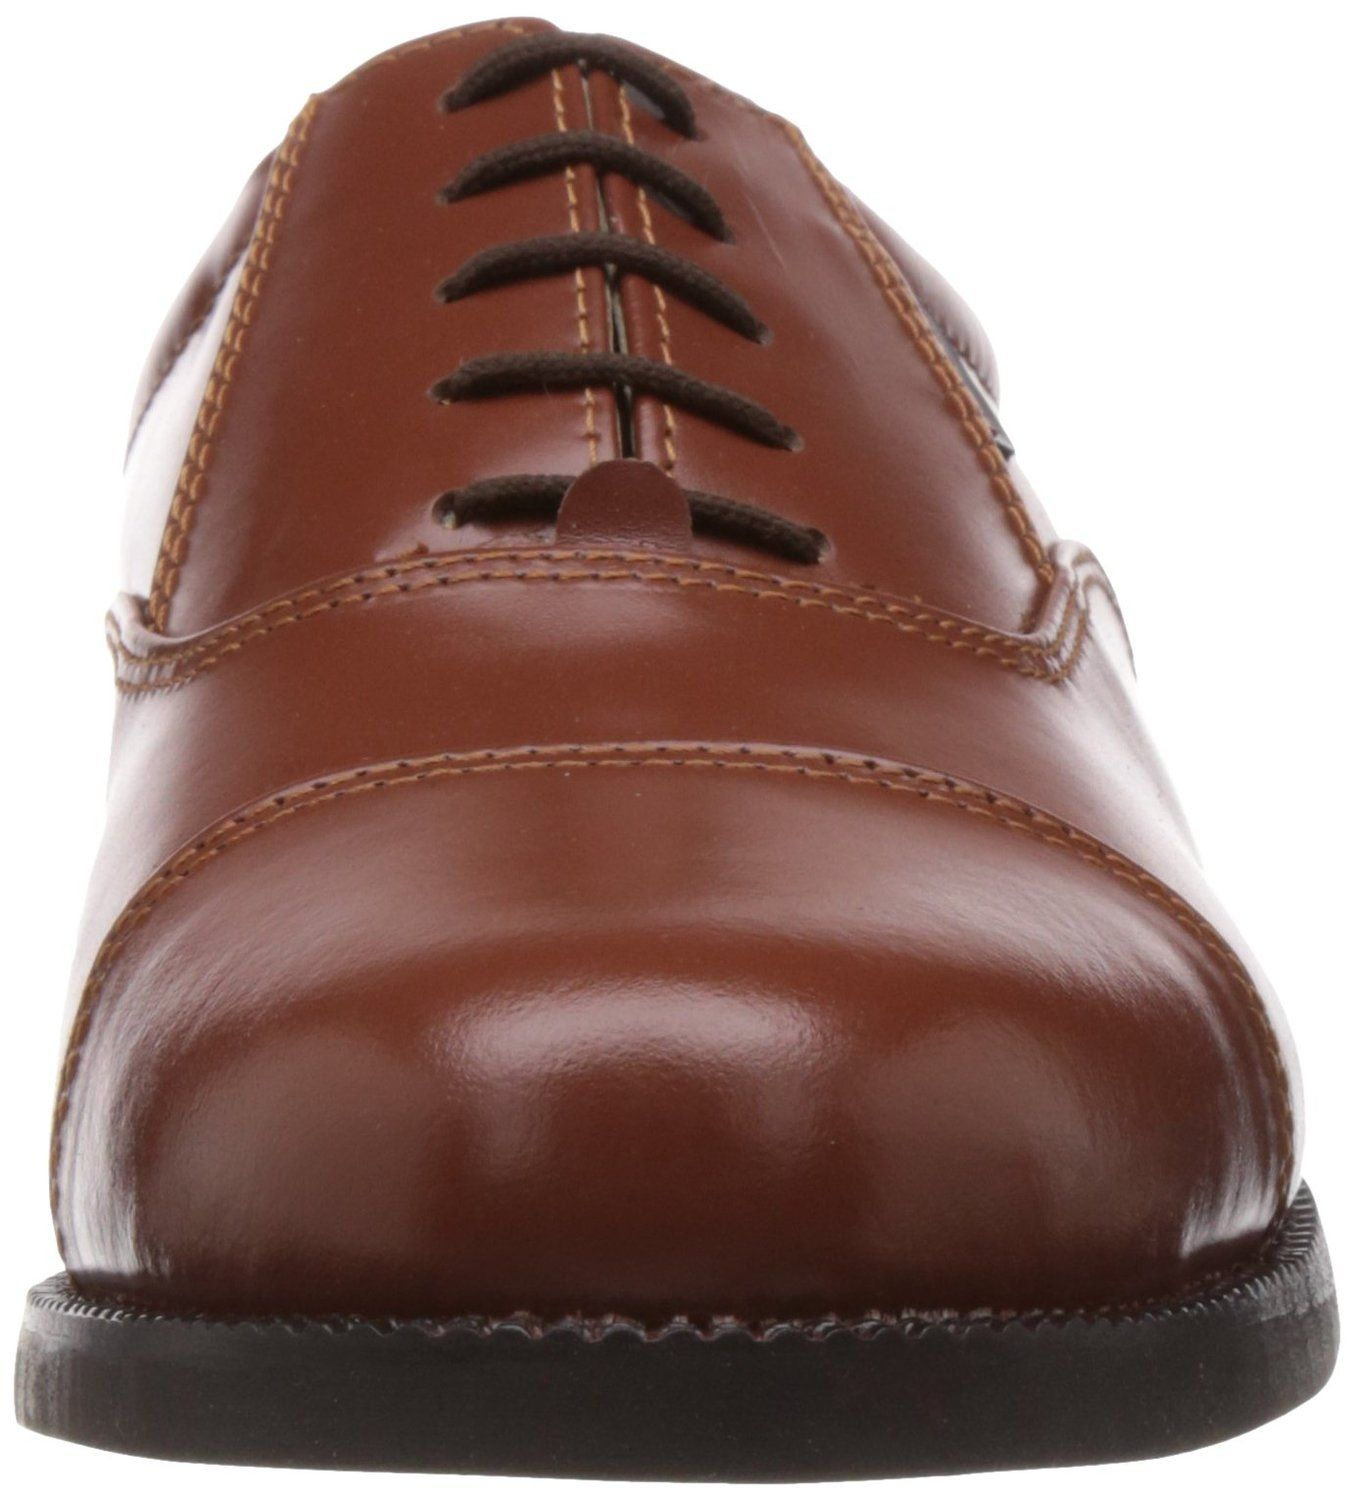 043be3042ee Red Chief Men s Tan Leather Lace-ups  Buy Online at Low Prices in India -  Amazon.in